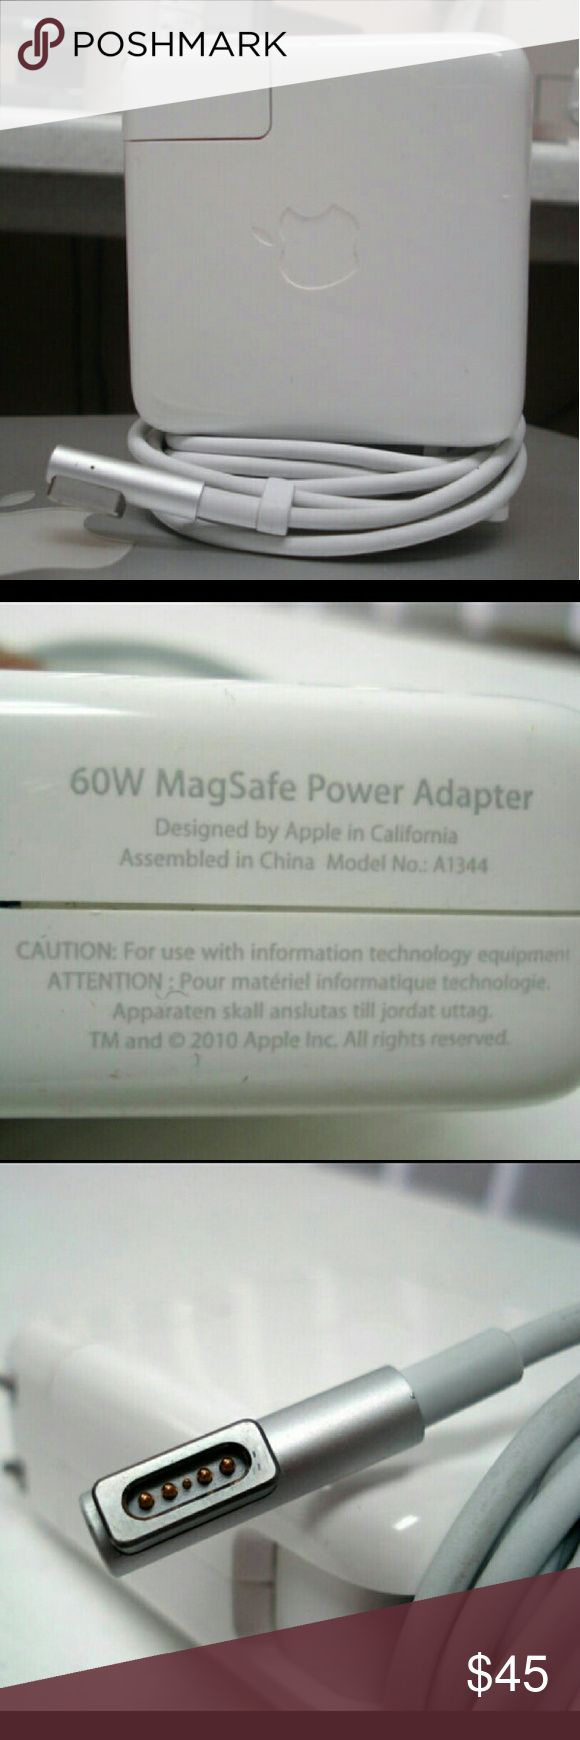 New genuine macbook 60w magsafe macbook charger Item is brand new never used. Retails for $80 at the Apple store.compatible with these macbooks   MacBook Pro (13-inch, Mid 2009) MacBook Pro (15-inch, 2.53GHz, Mid 2009) MacBook (13-inch, Mid 2009) MacBook (13-inch, Early 2009) MacBook (13-inch, Aluminum, Late 2008) MacBook (13-inch, Late 2008) MacBook (13-inch, Early 2008) MacBook (13-inch, Late 2007) MacBook (13-inch, Mid 2007) MacBook (13-inch, Late 2006)  MacBook (13-inch)  If you have any…